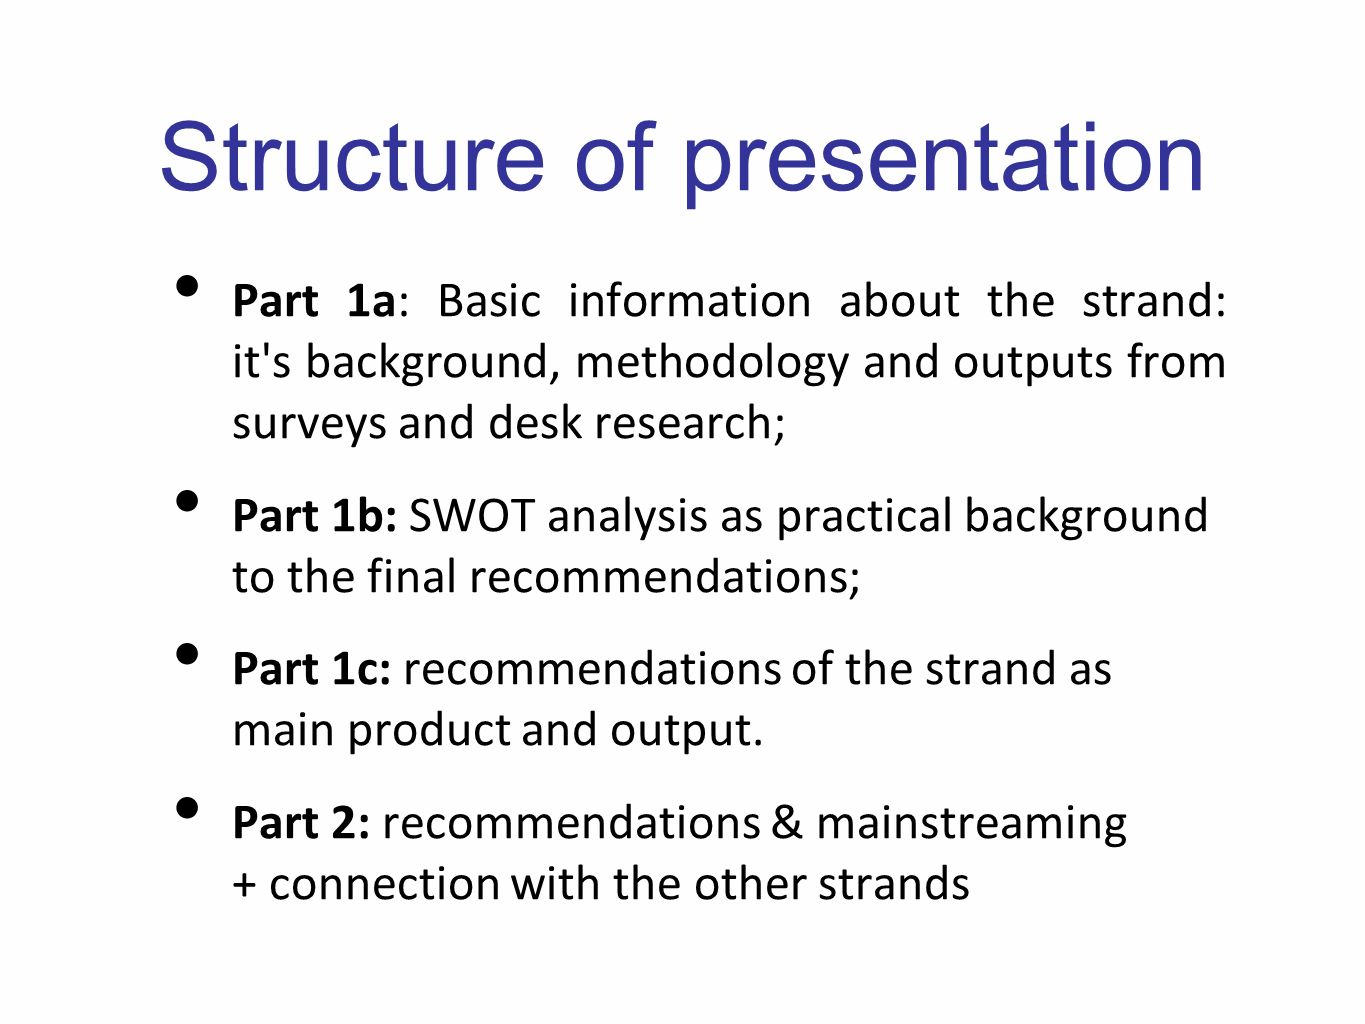 Structure of presentation Part 1a: Basic information about the strand: it s background, methodology and outputs from surveys and desk research; Part 1b: SWOT analysis as practical background to the final recommendations; Part 1c: recommendations of the strand as main product and output.